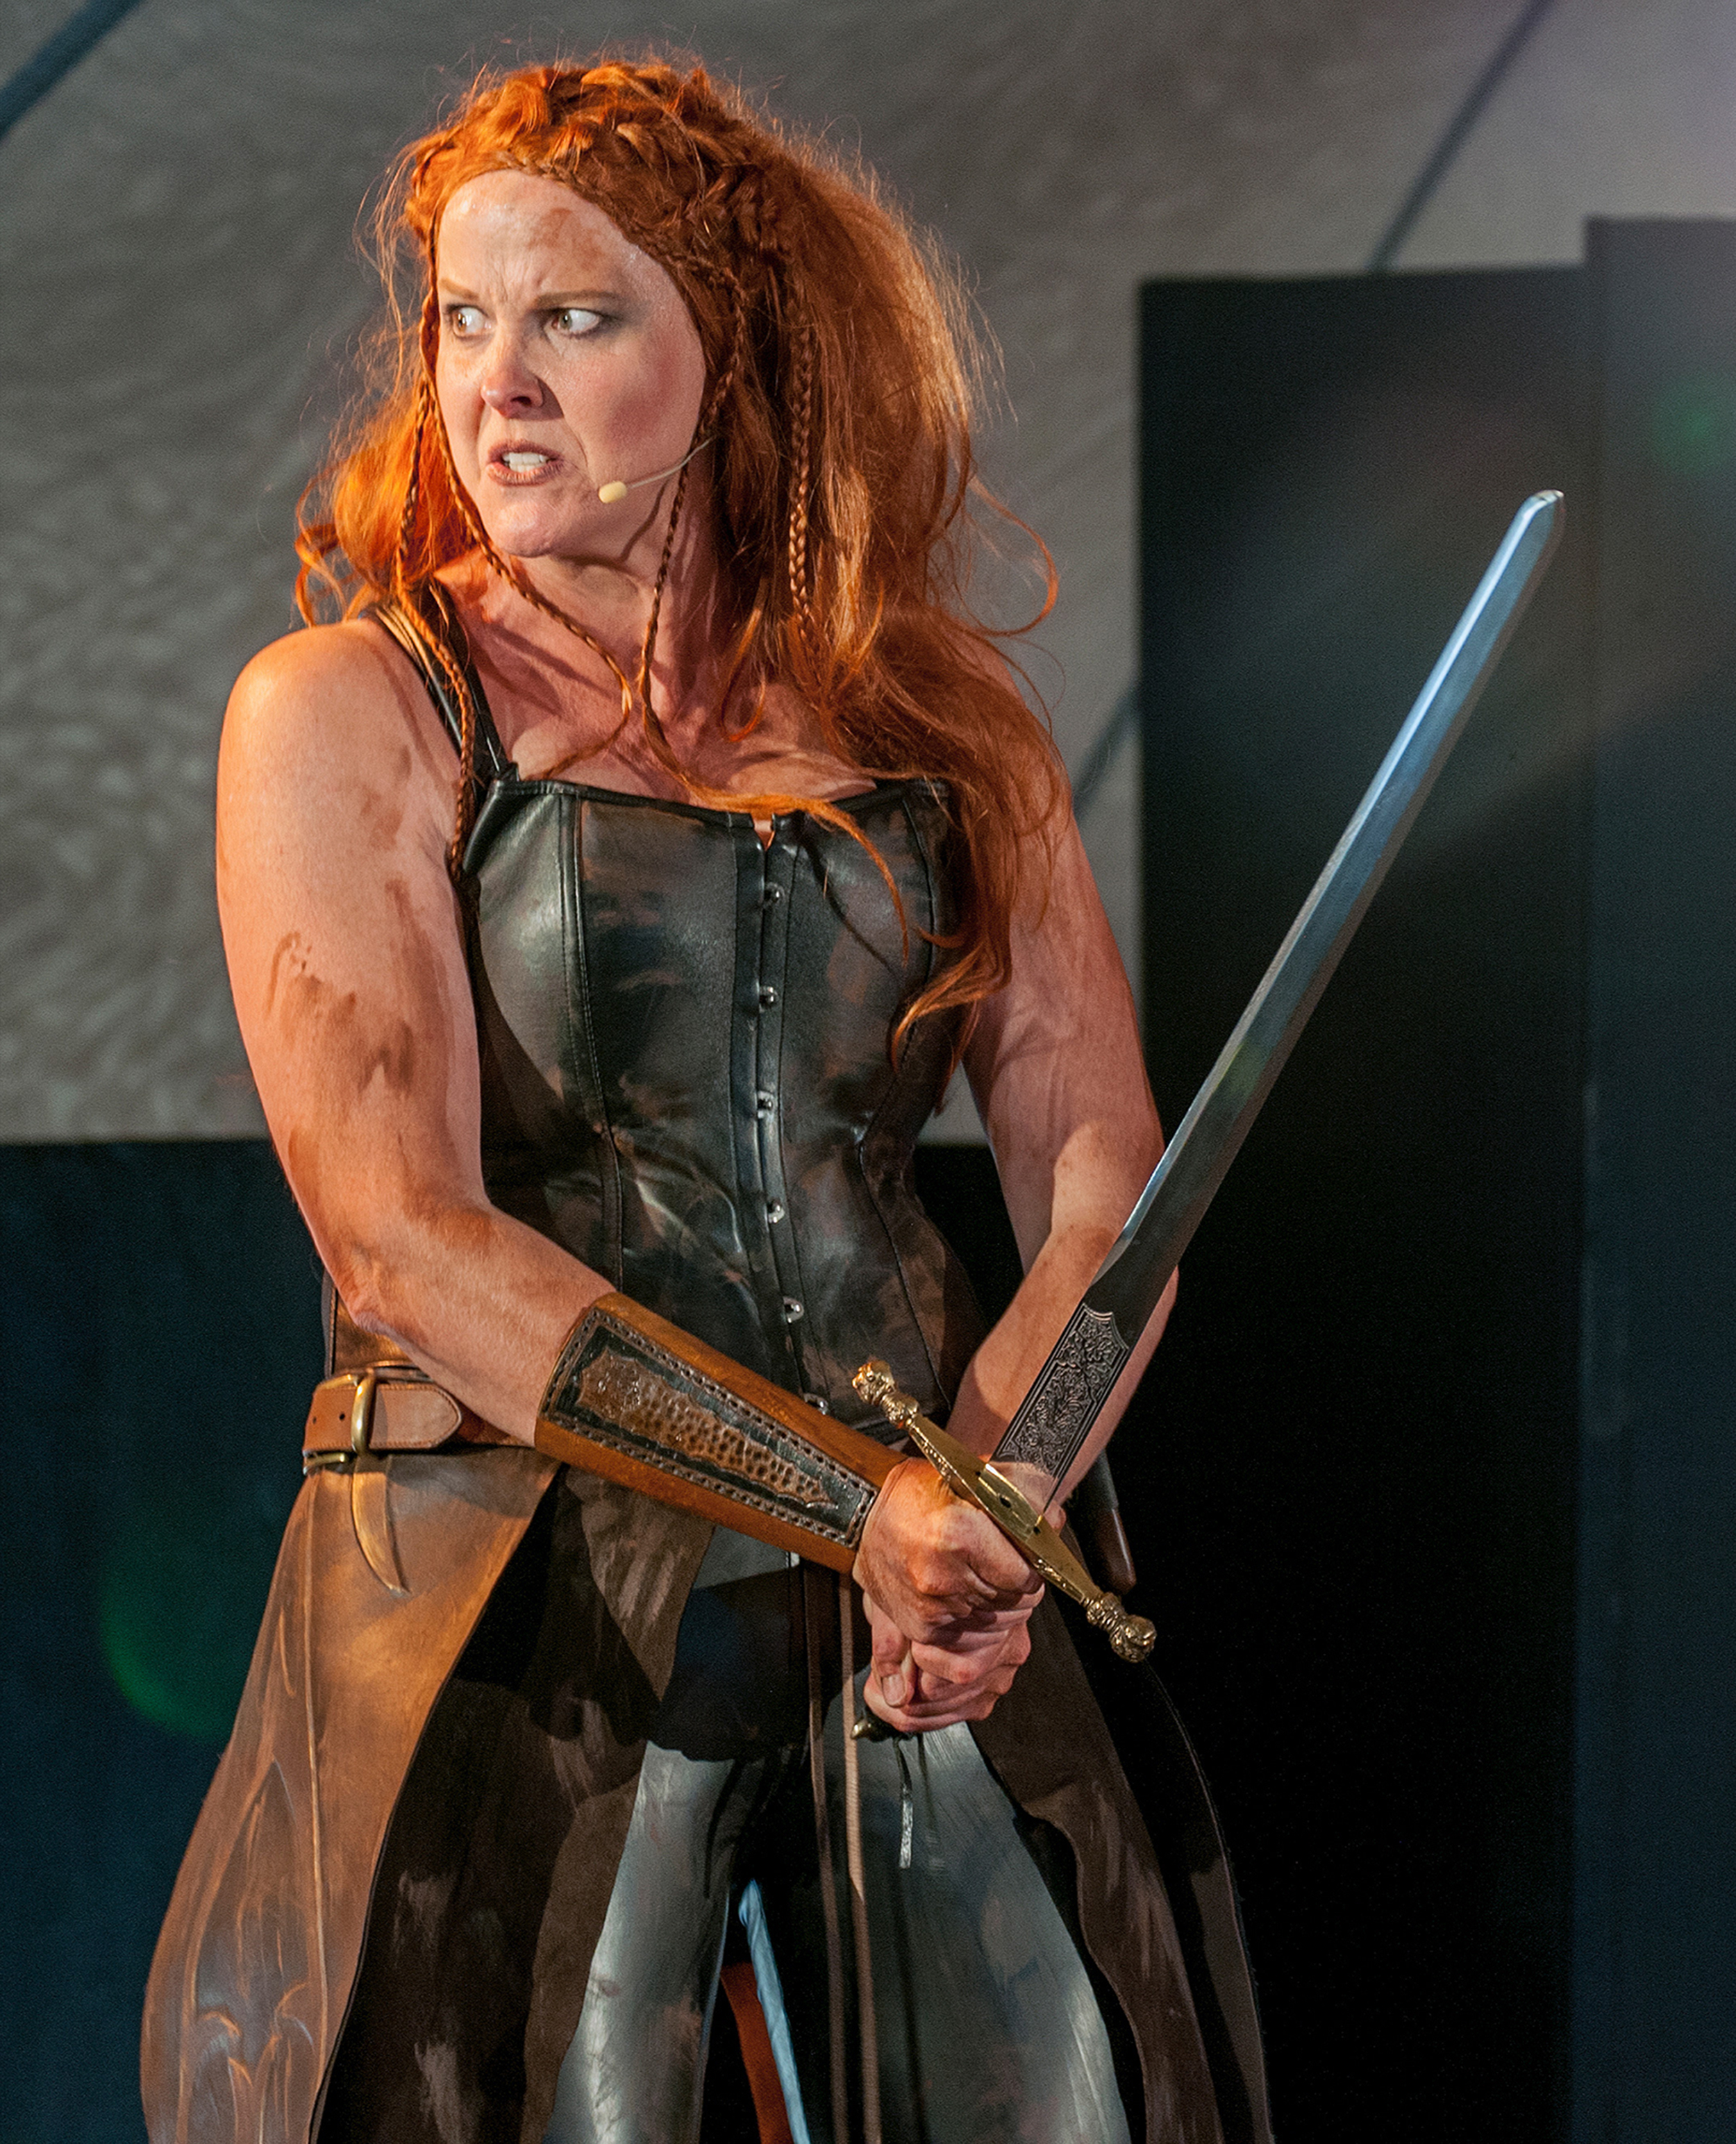 Shield Maiden Play, Female Viking Warrior